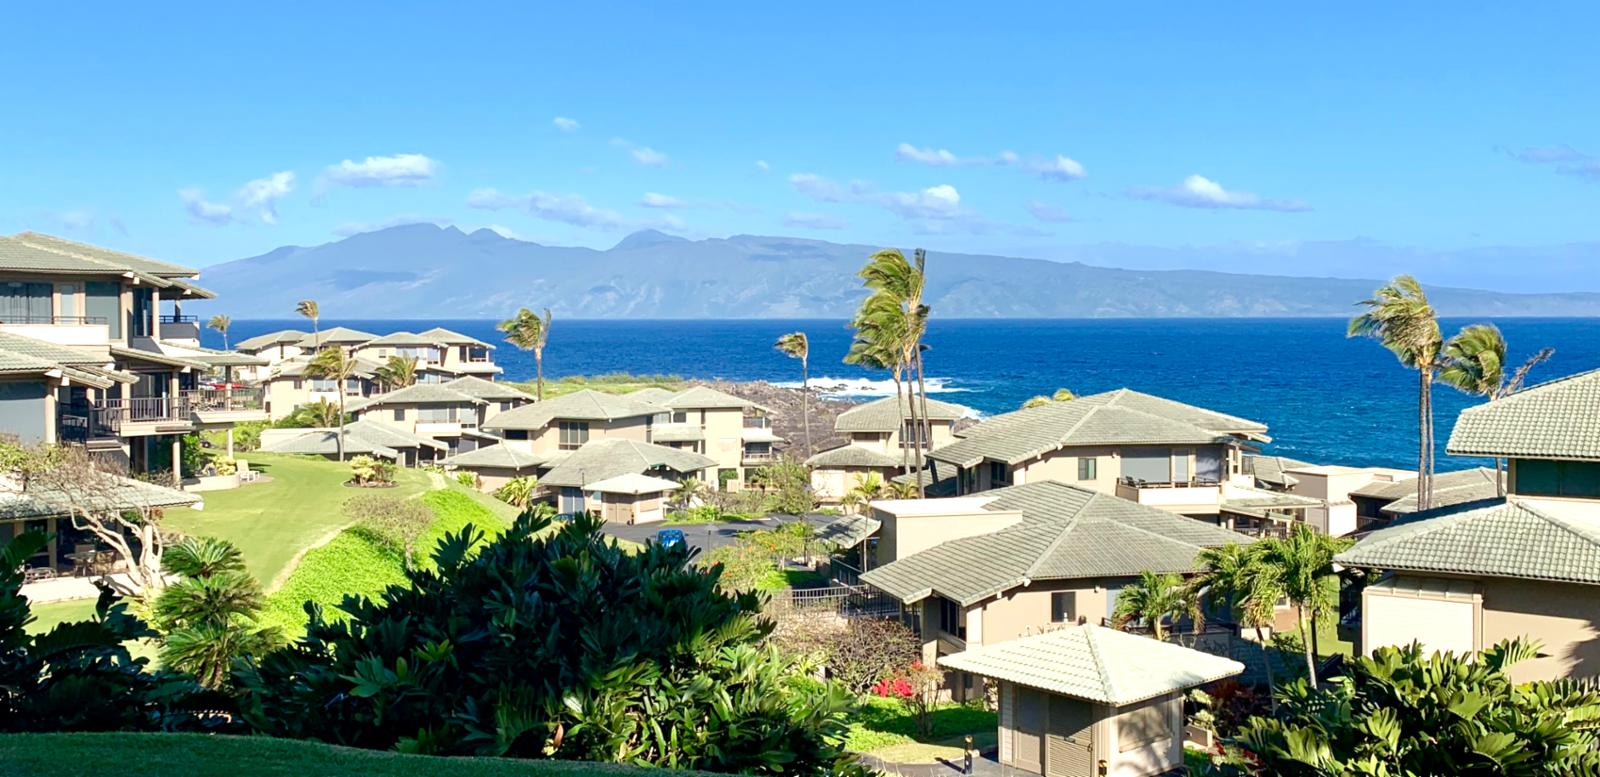 Welcome to Kapalua Bay Villa 14G4 - pure luxury awaits!